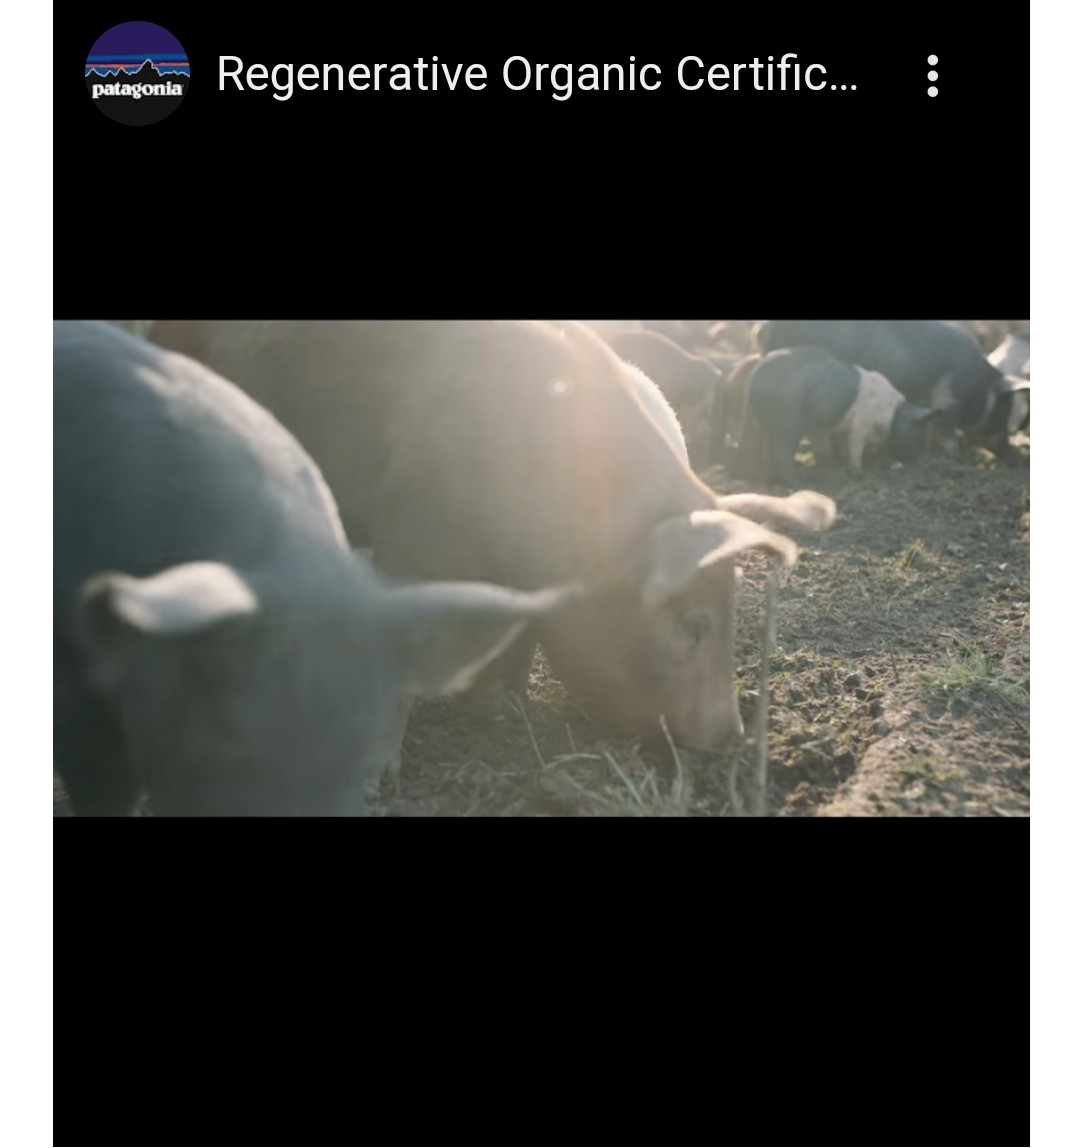 Article Worth Reading #2 - Regenerative Organic Alliance - Farming like our world depends on it